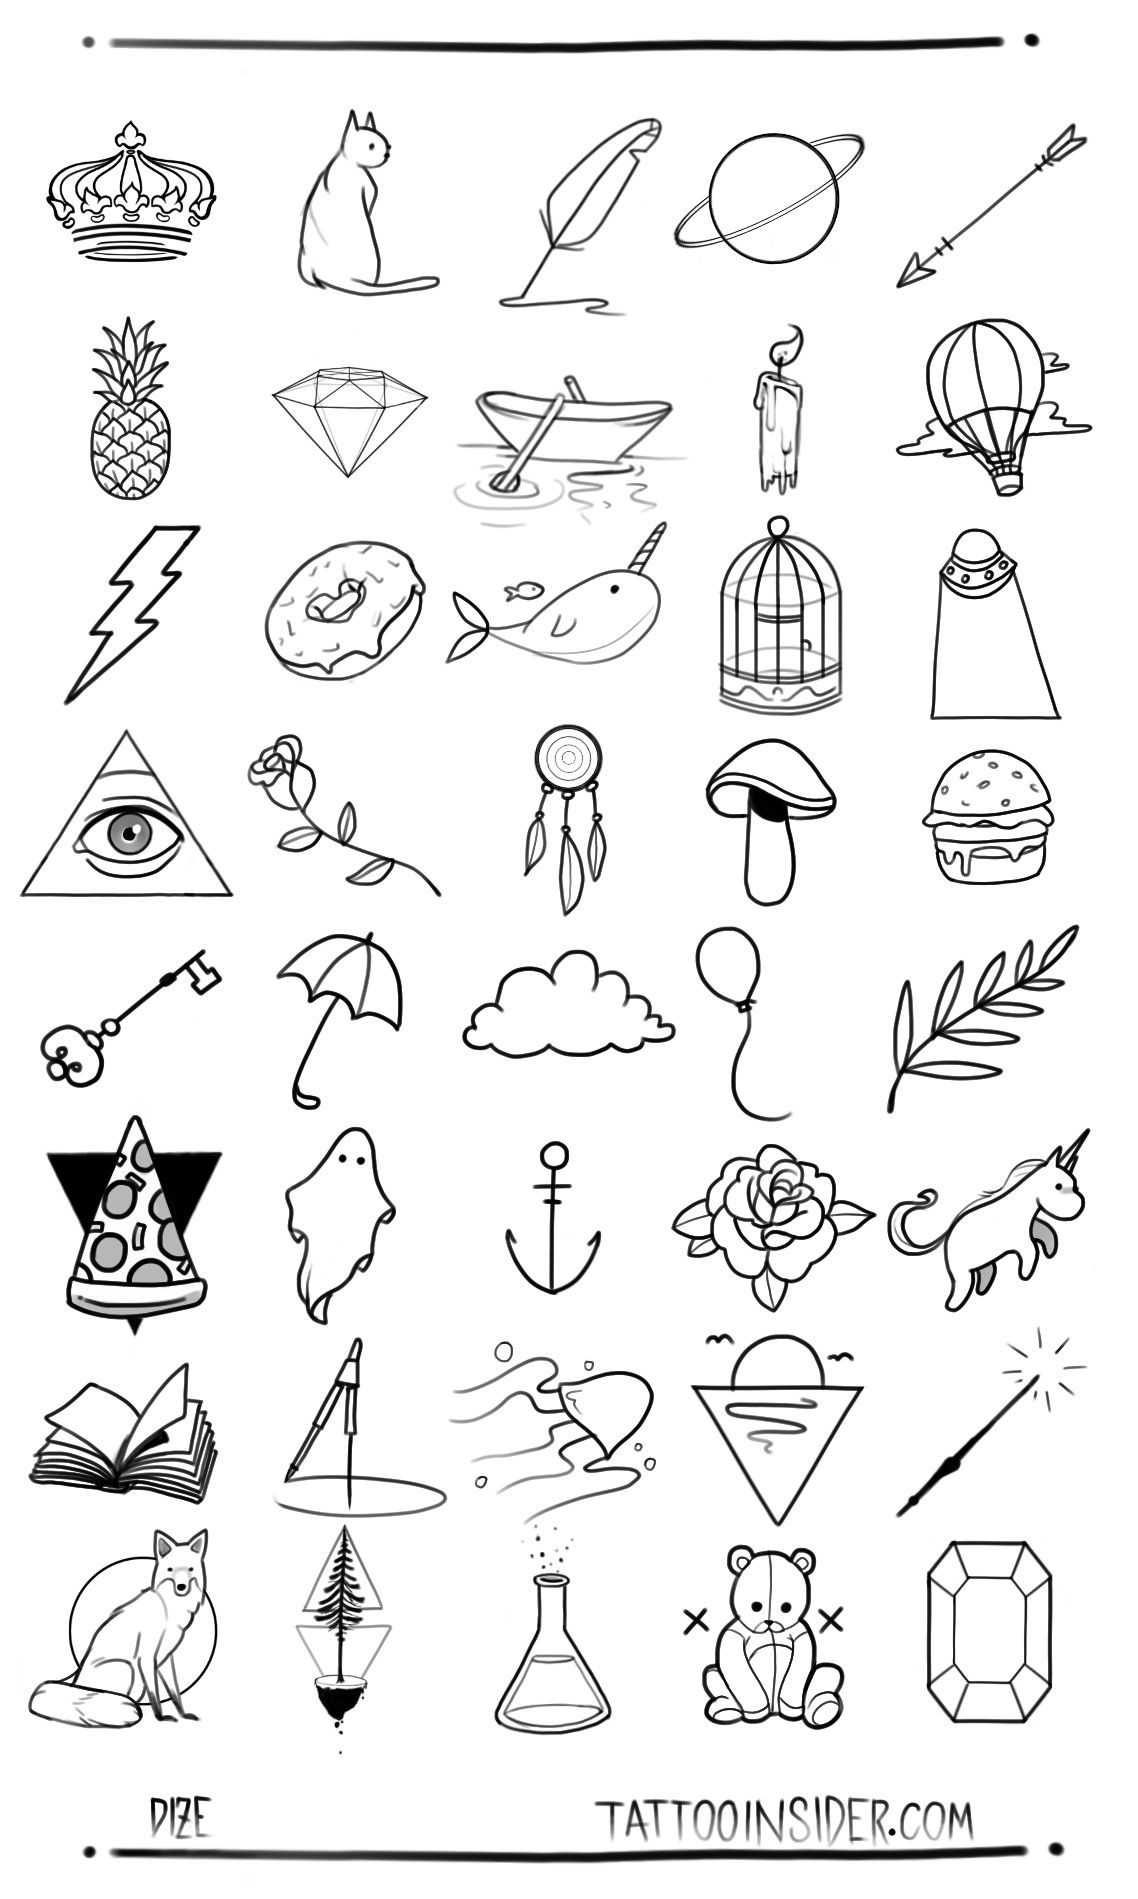 80 Free Small Tattoo Designs Idees Gia Zwgrafikh Atzentes Kai